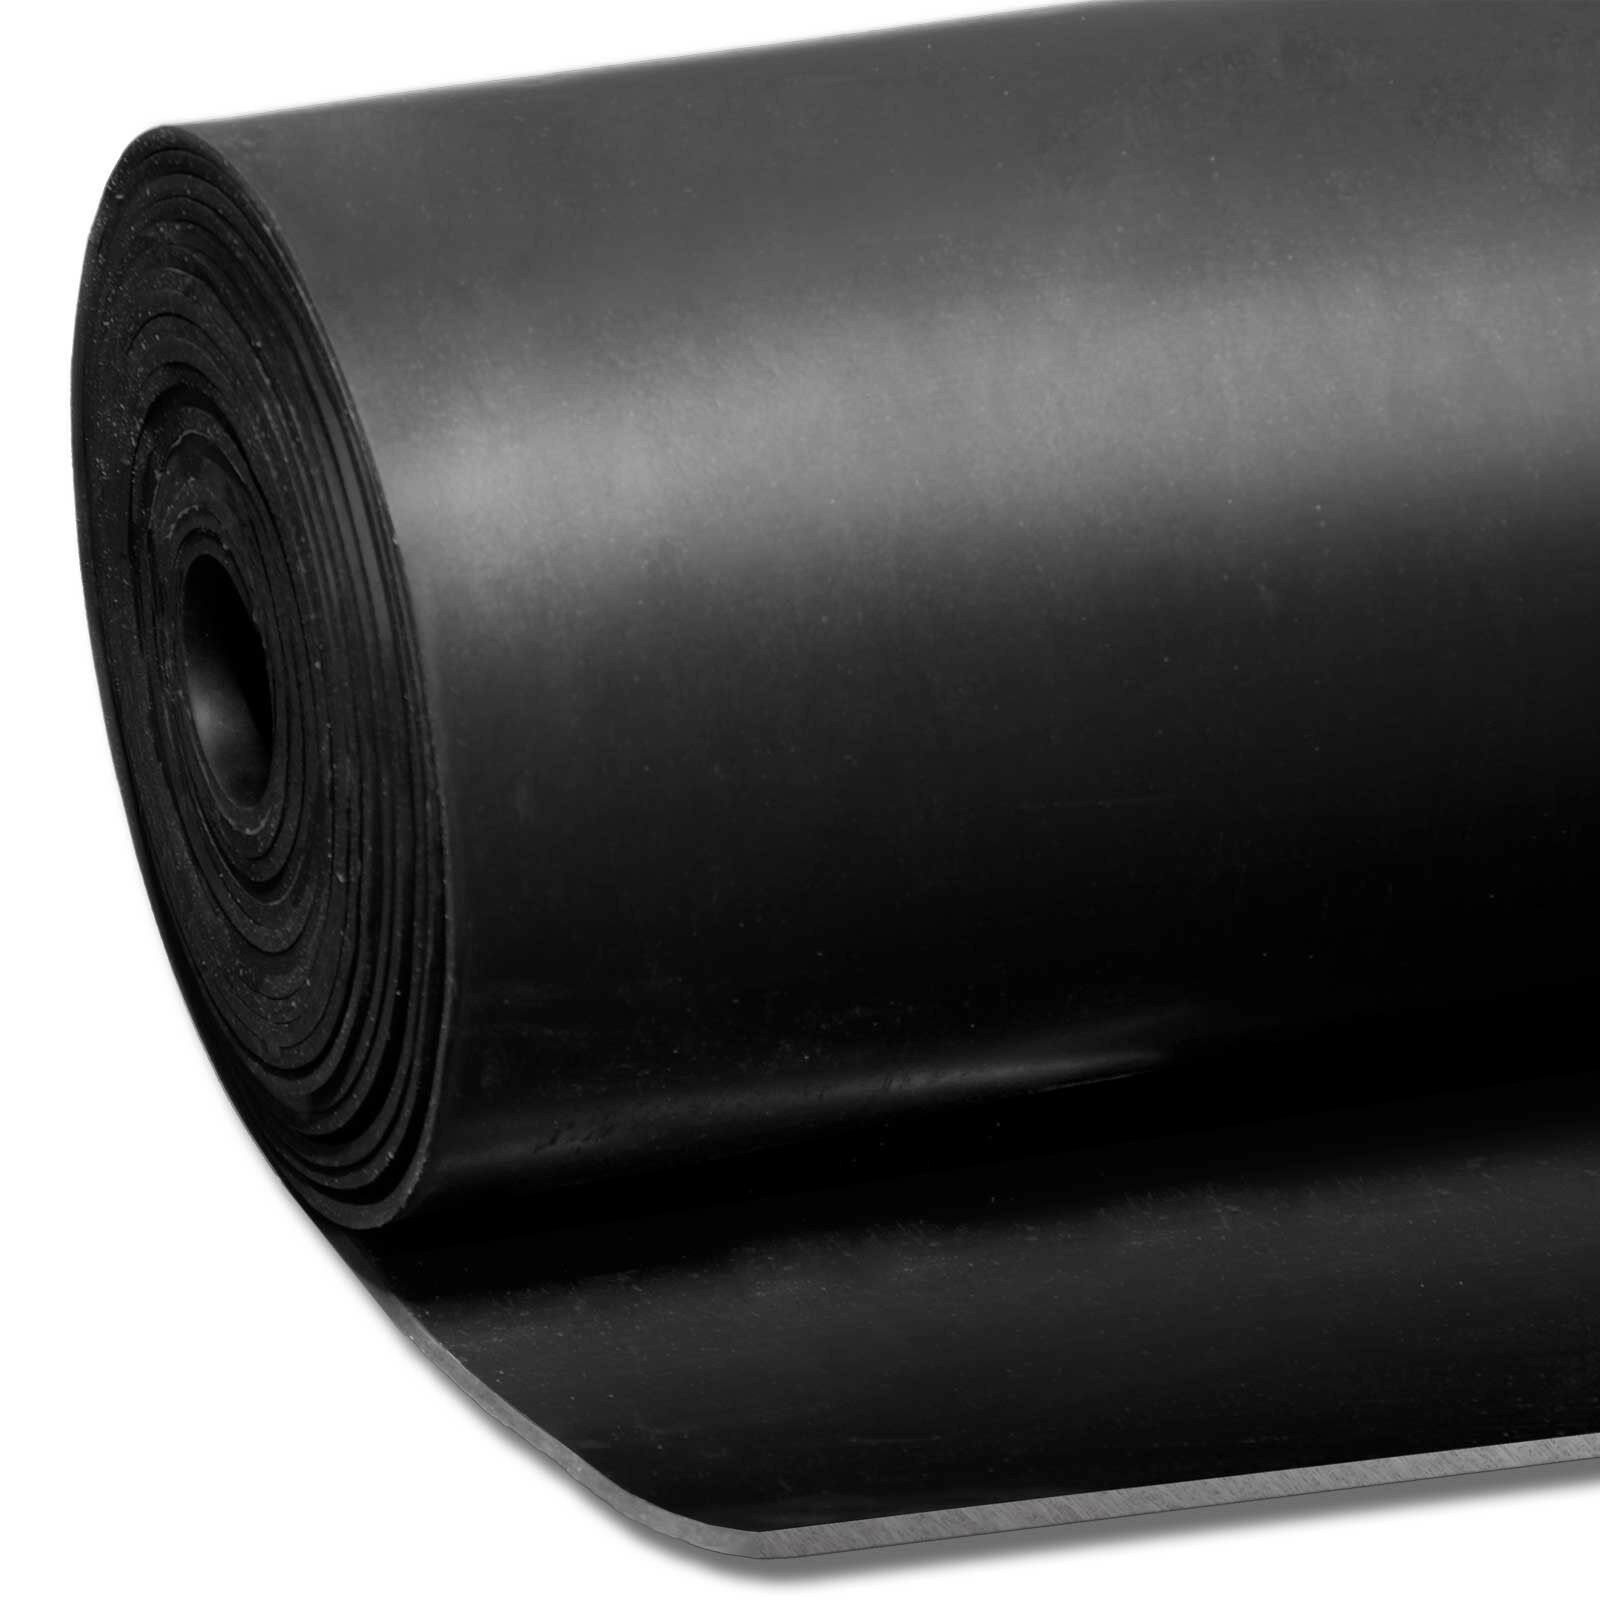 Car Parts - Smooth Matt Black Rubber Flooring Matting for Garage, Van or Car Roll Mat